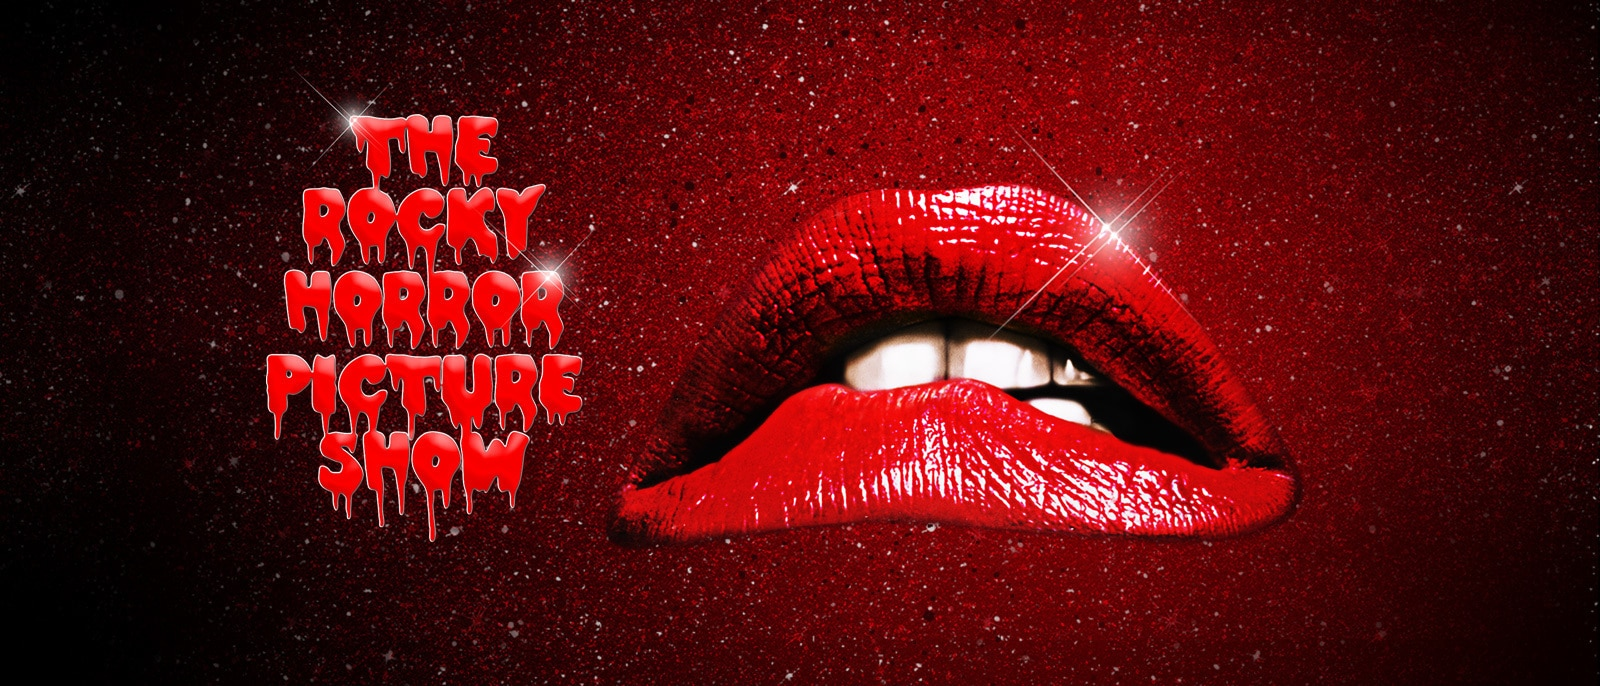 The Rocky Horror Picture Show Hero